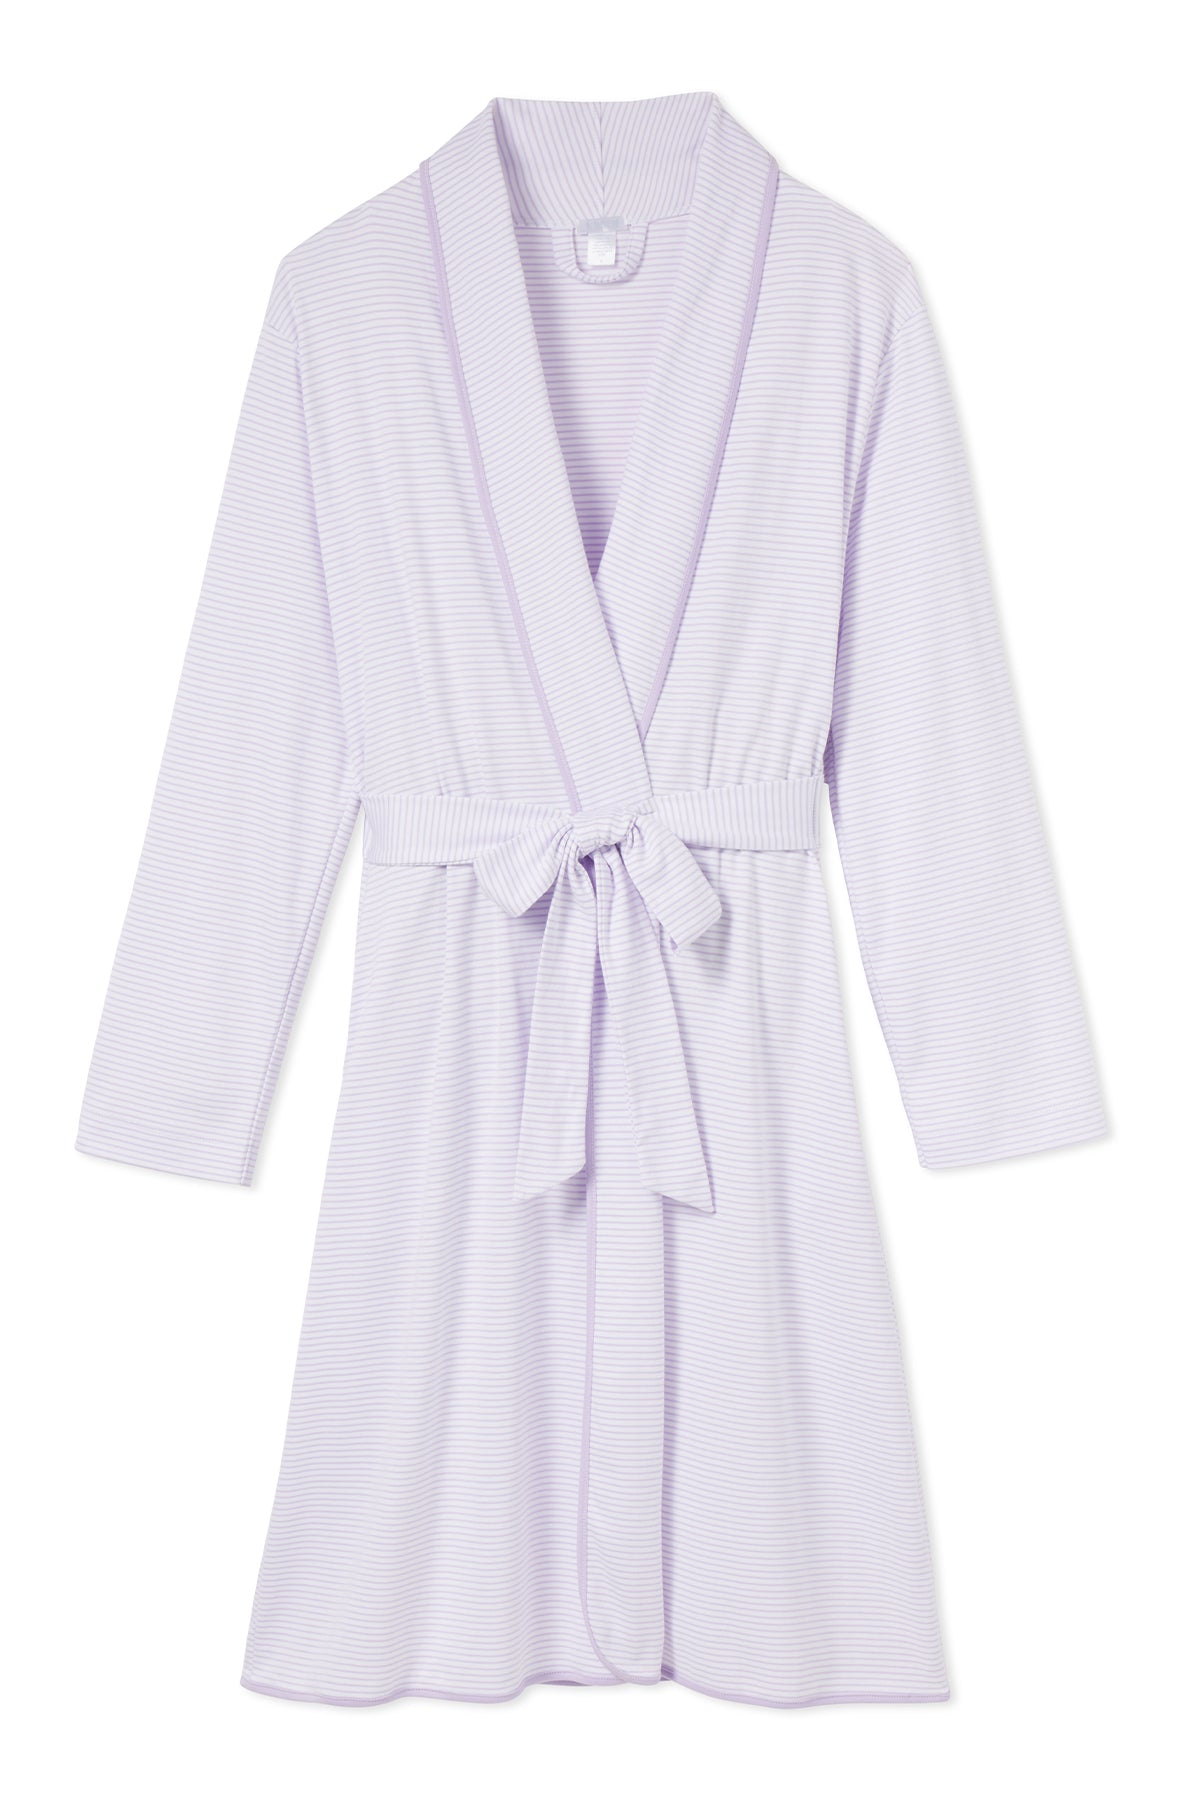 Pima Robe in Wisteria